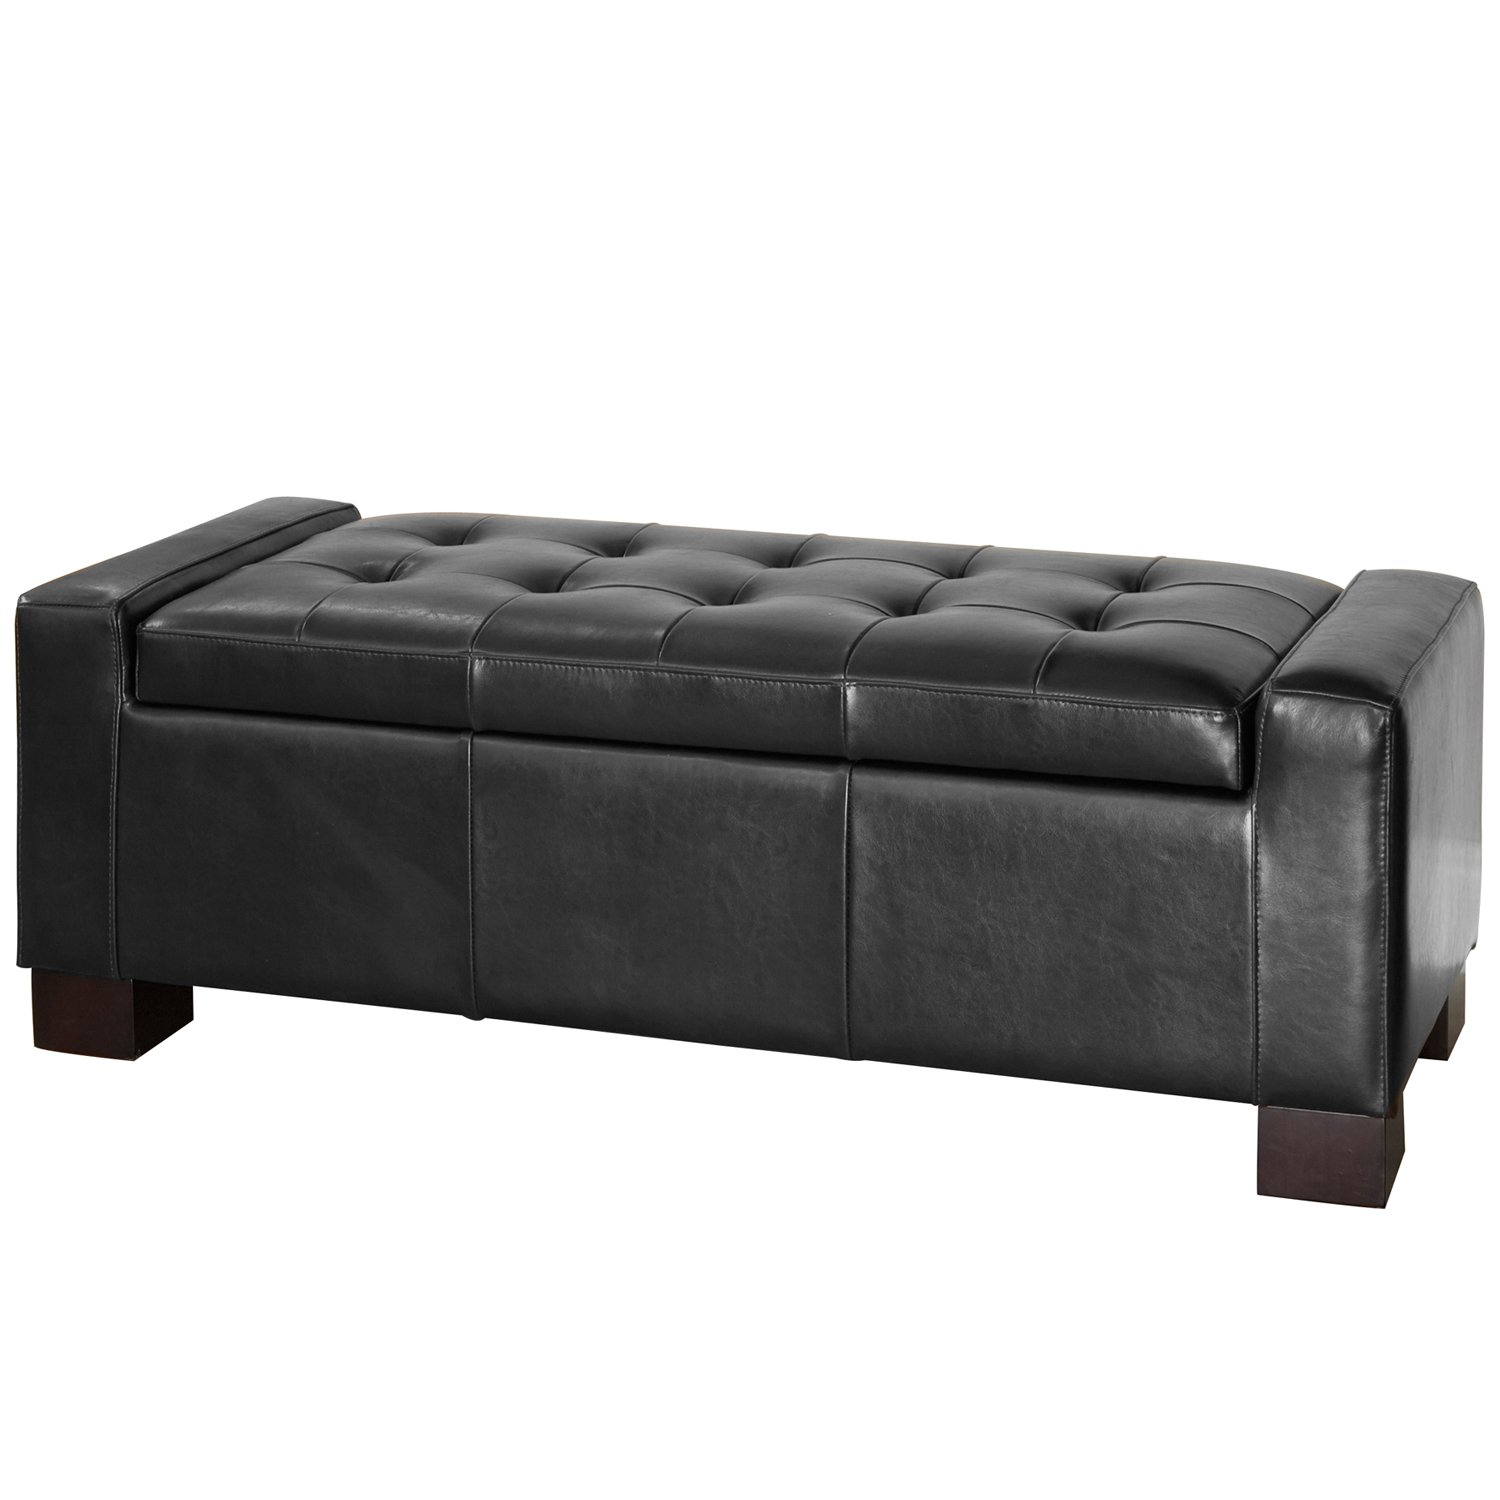 Amazon.com: Best Selling Guernsey Black Leather Storage Ottoman: Kitchen U0026  Dining